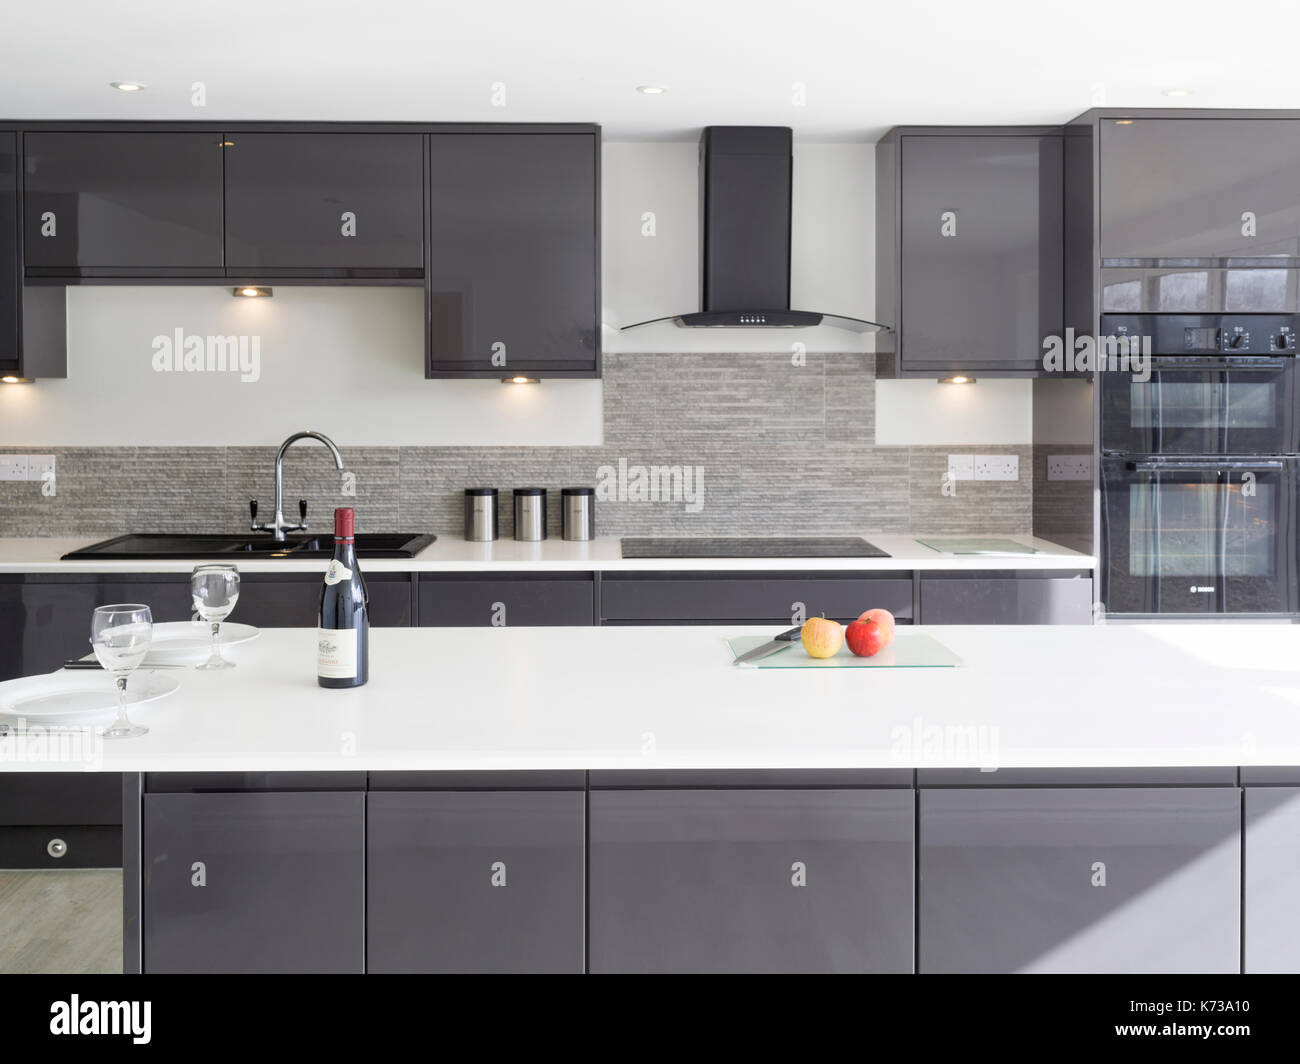 A contemporary, minimal, monochrome domestic kitchen with island and solid countertops in a modern UK home - Stock Image